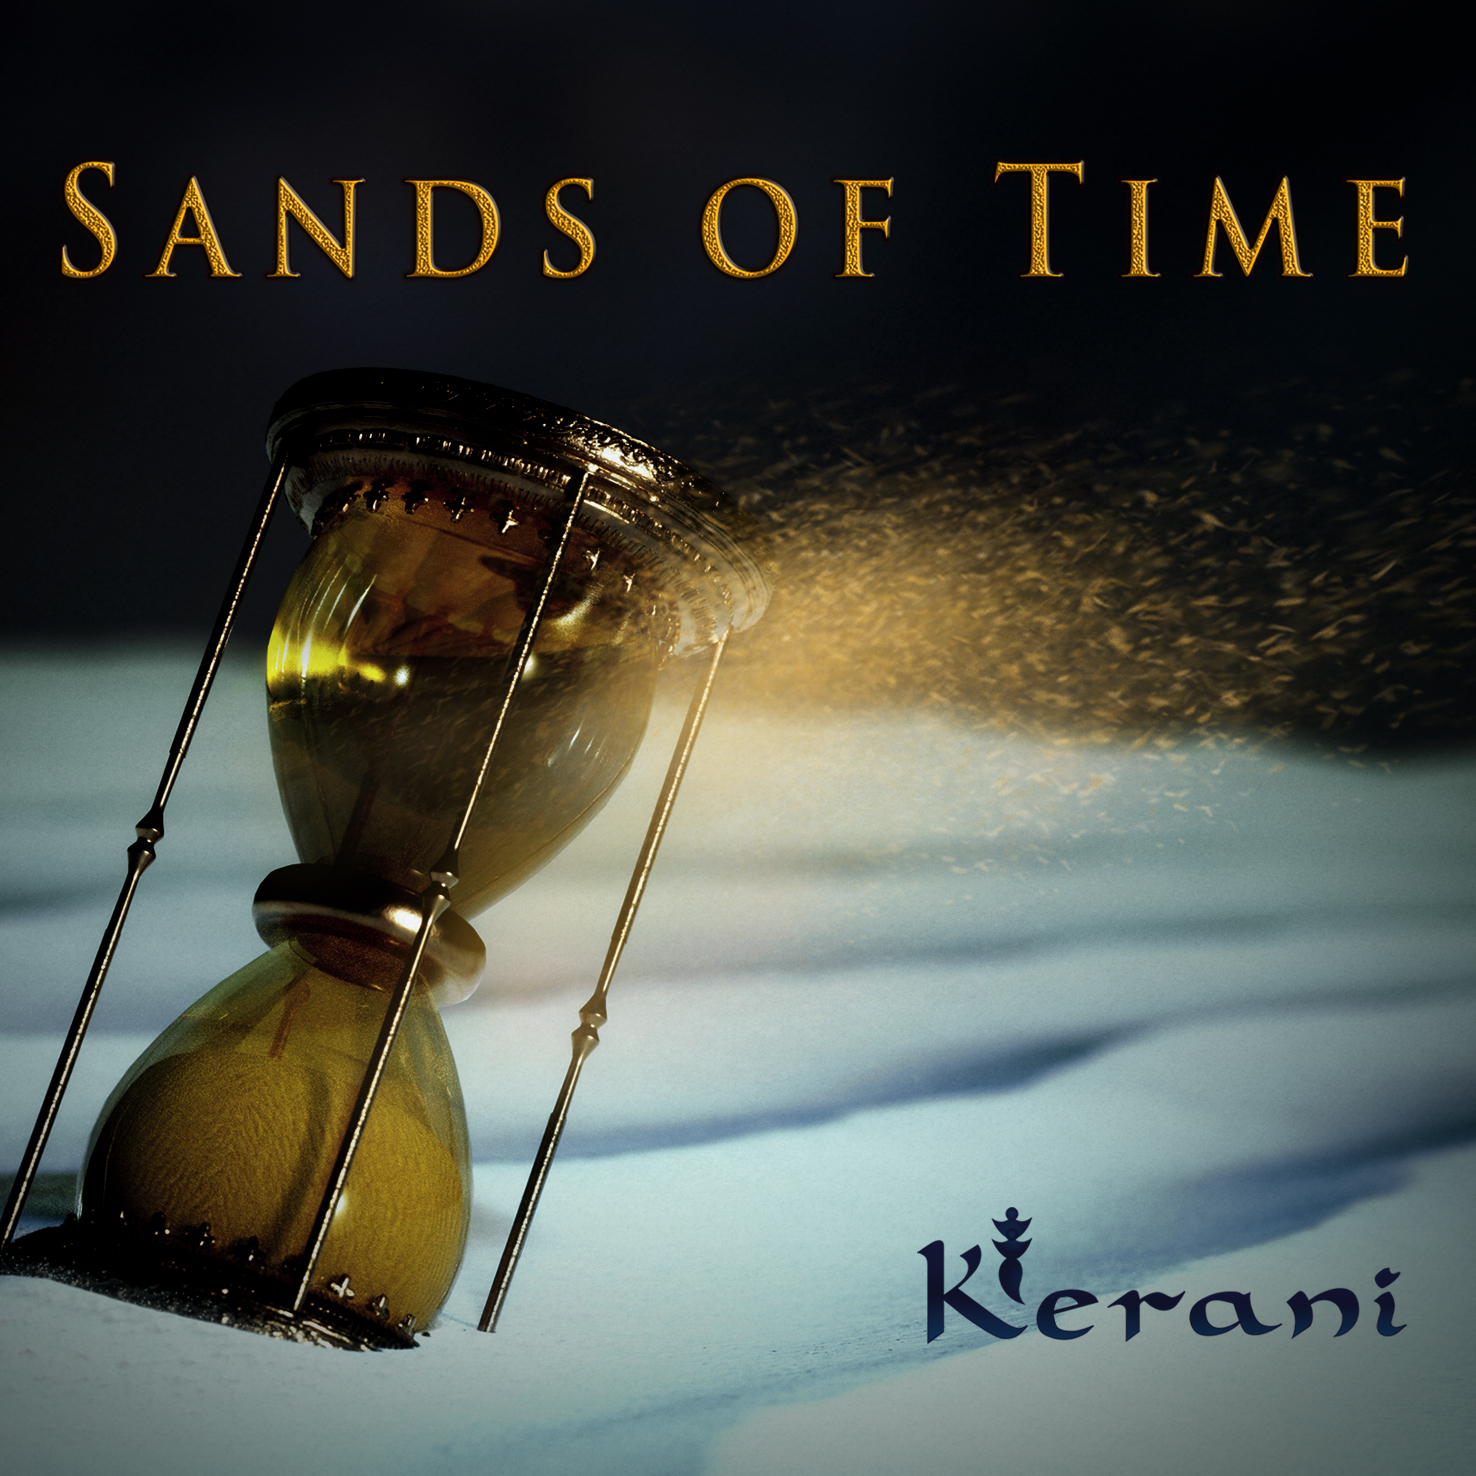 Kerani-Sands-of-Time-Album-cover.jpg